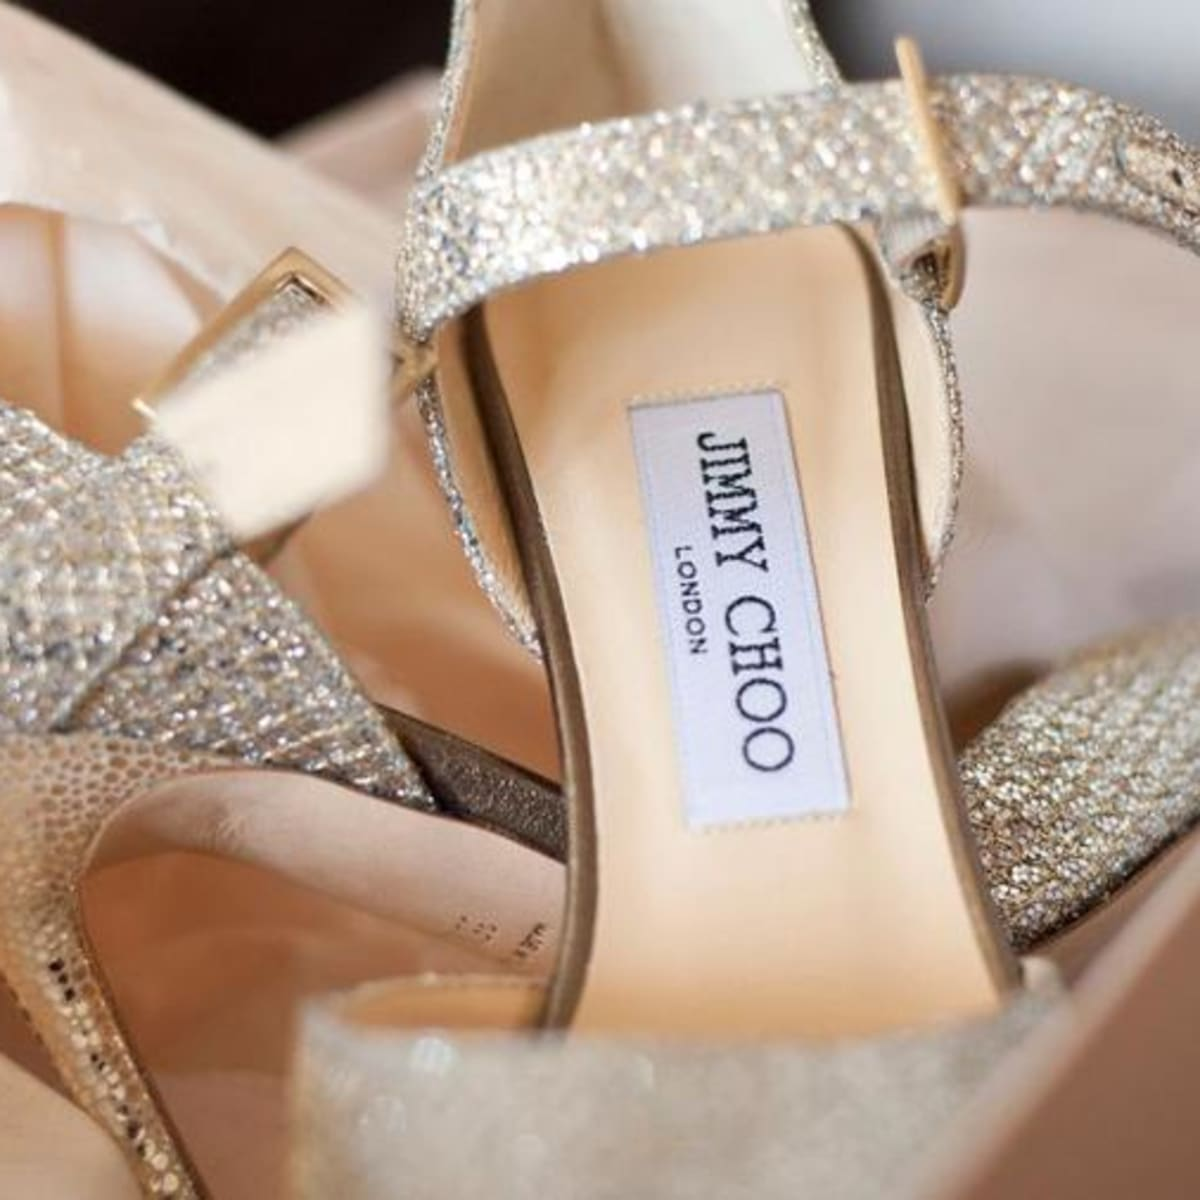 Outrageously Expensive Jimmy Choo Shoes